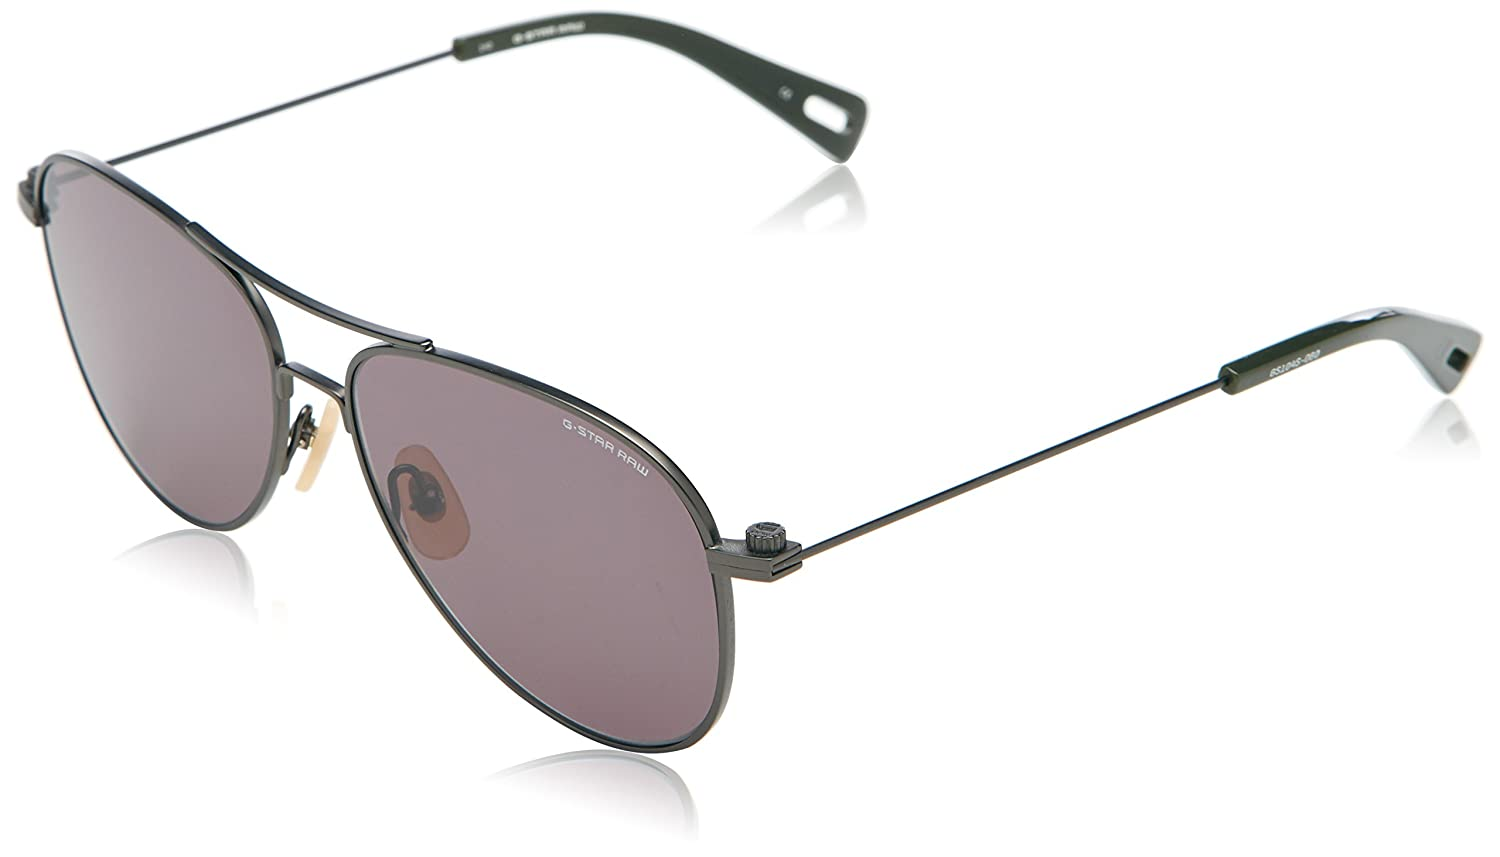 e79750c6e5 G-Star GS104S Metal Sniper Aviator Sunglasses 55mm  Amazon.co.uk  Clothing